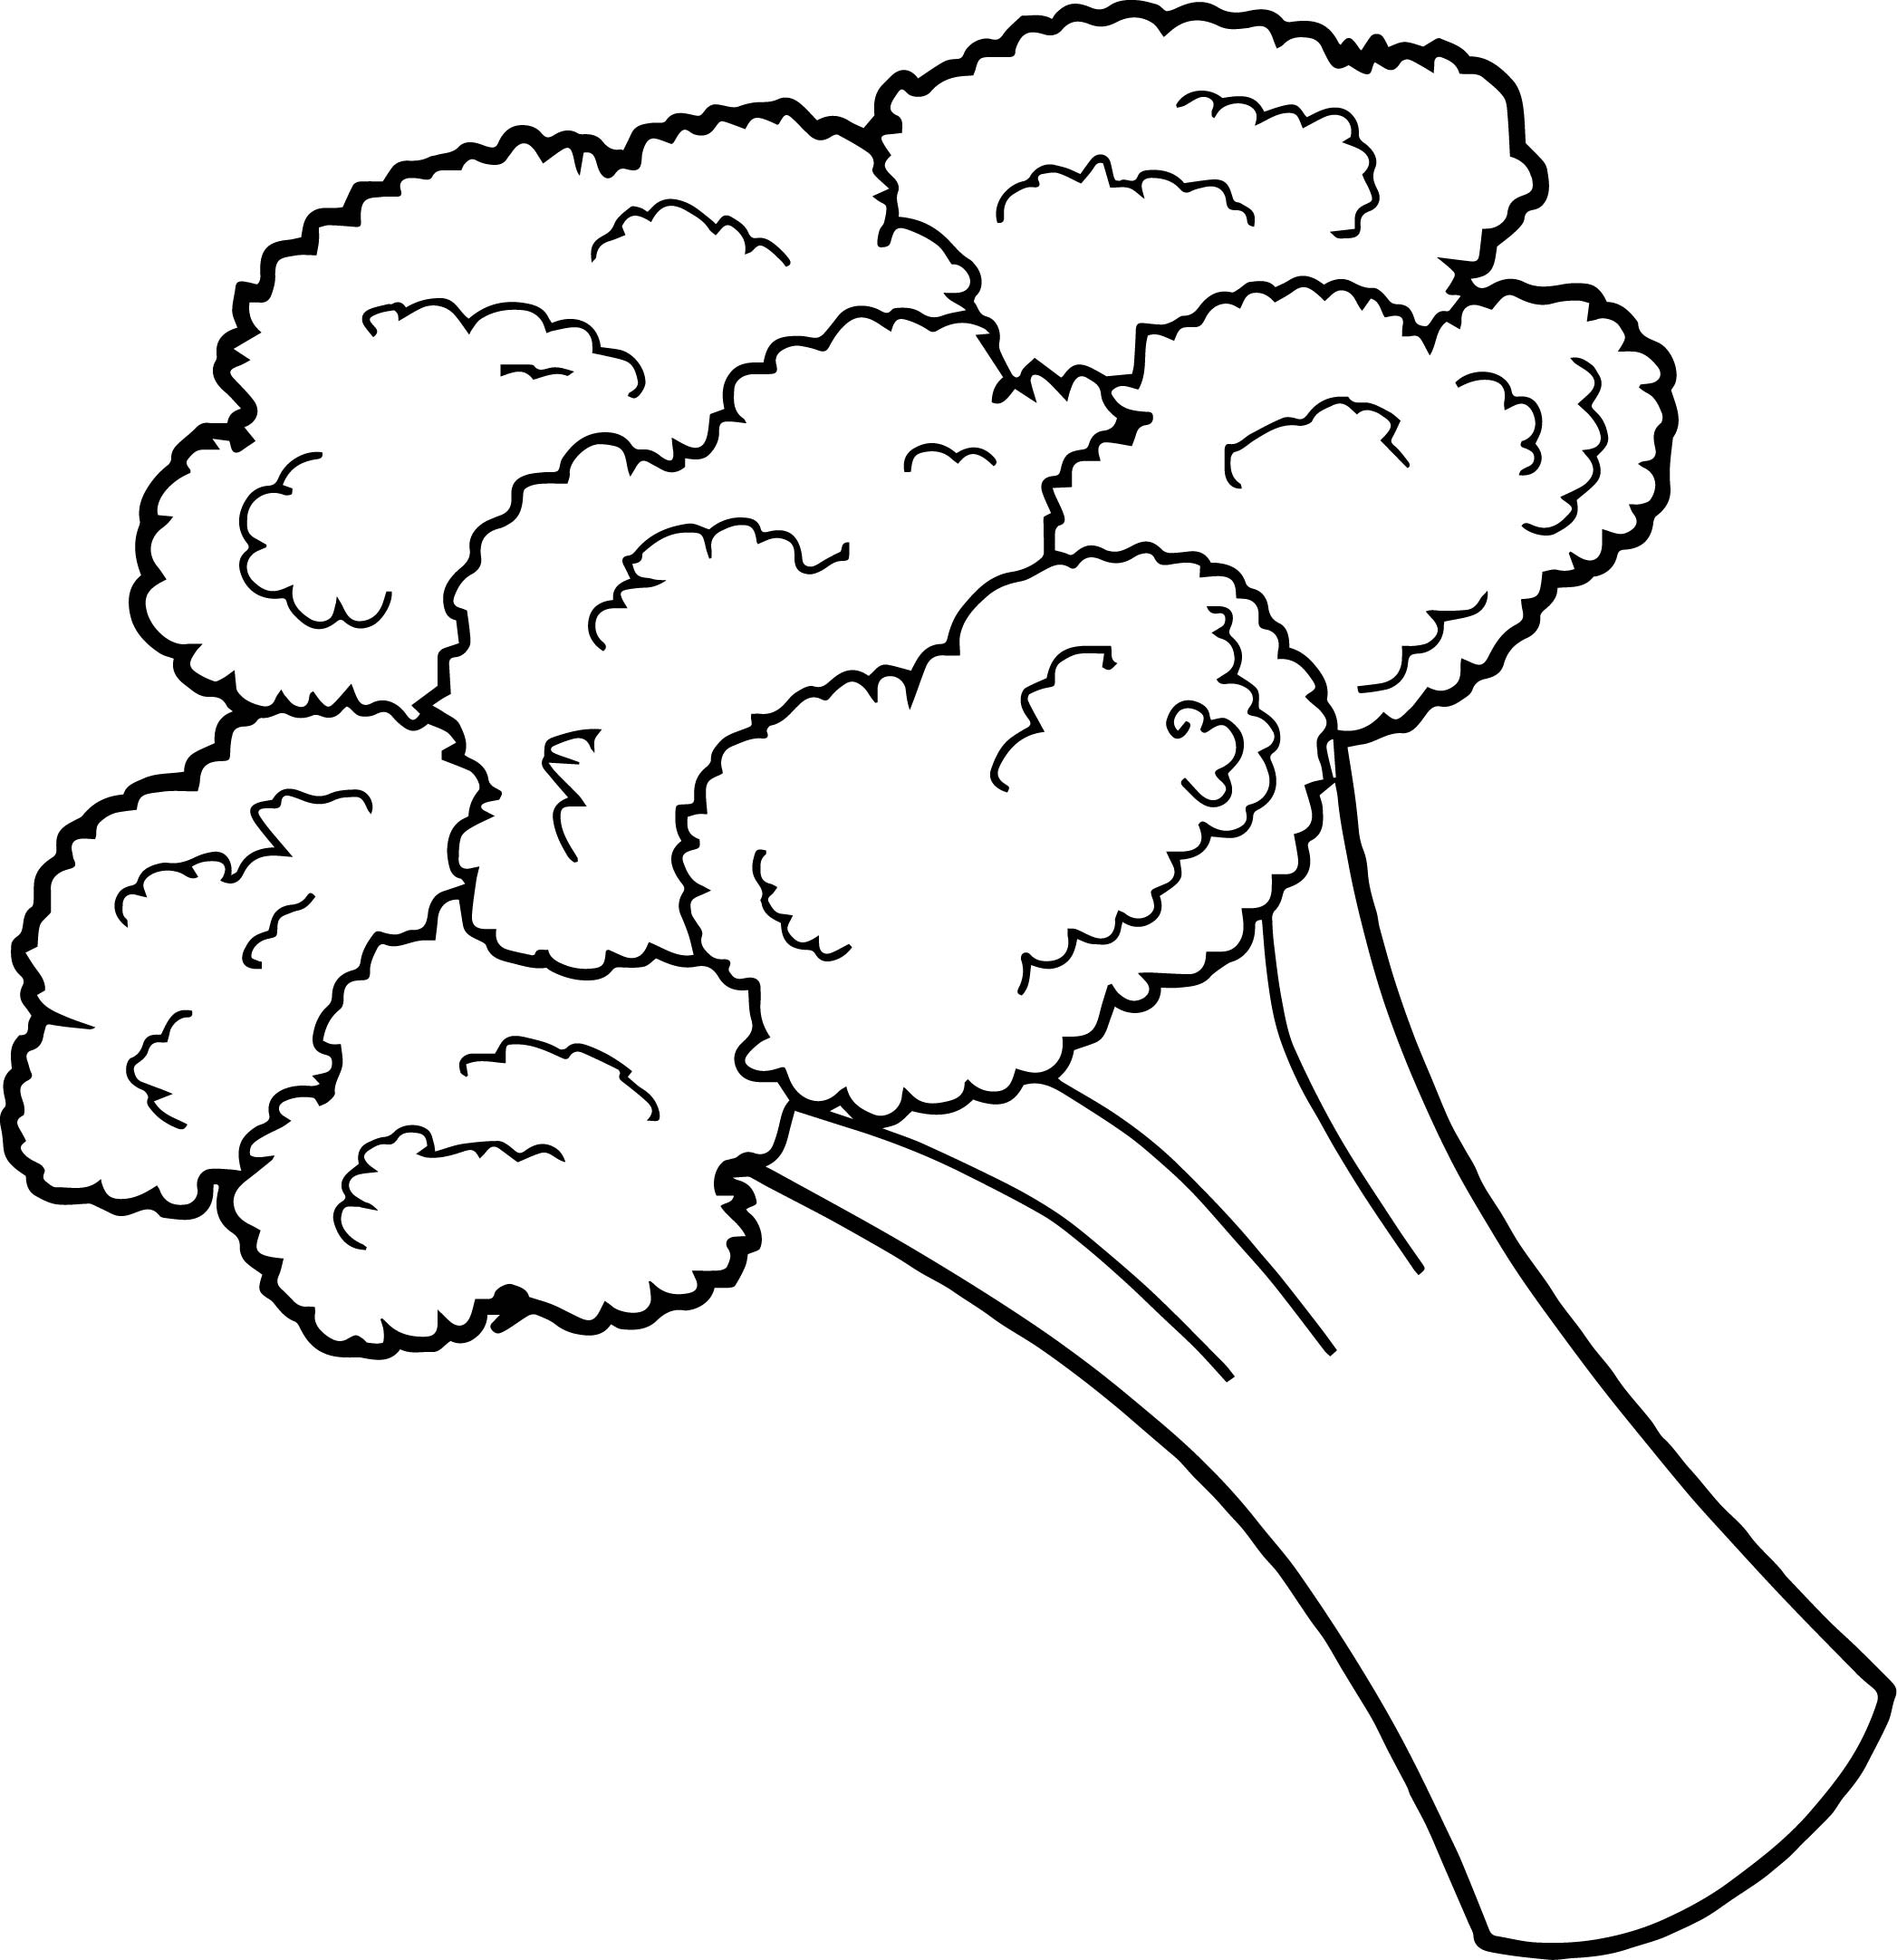 broccoli vegetable coloring page wecoloringpage